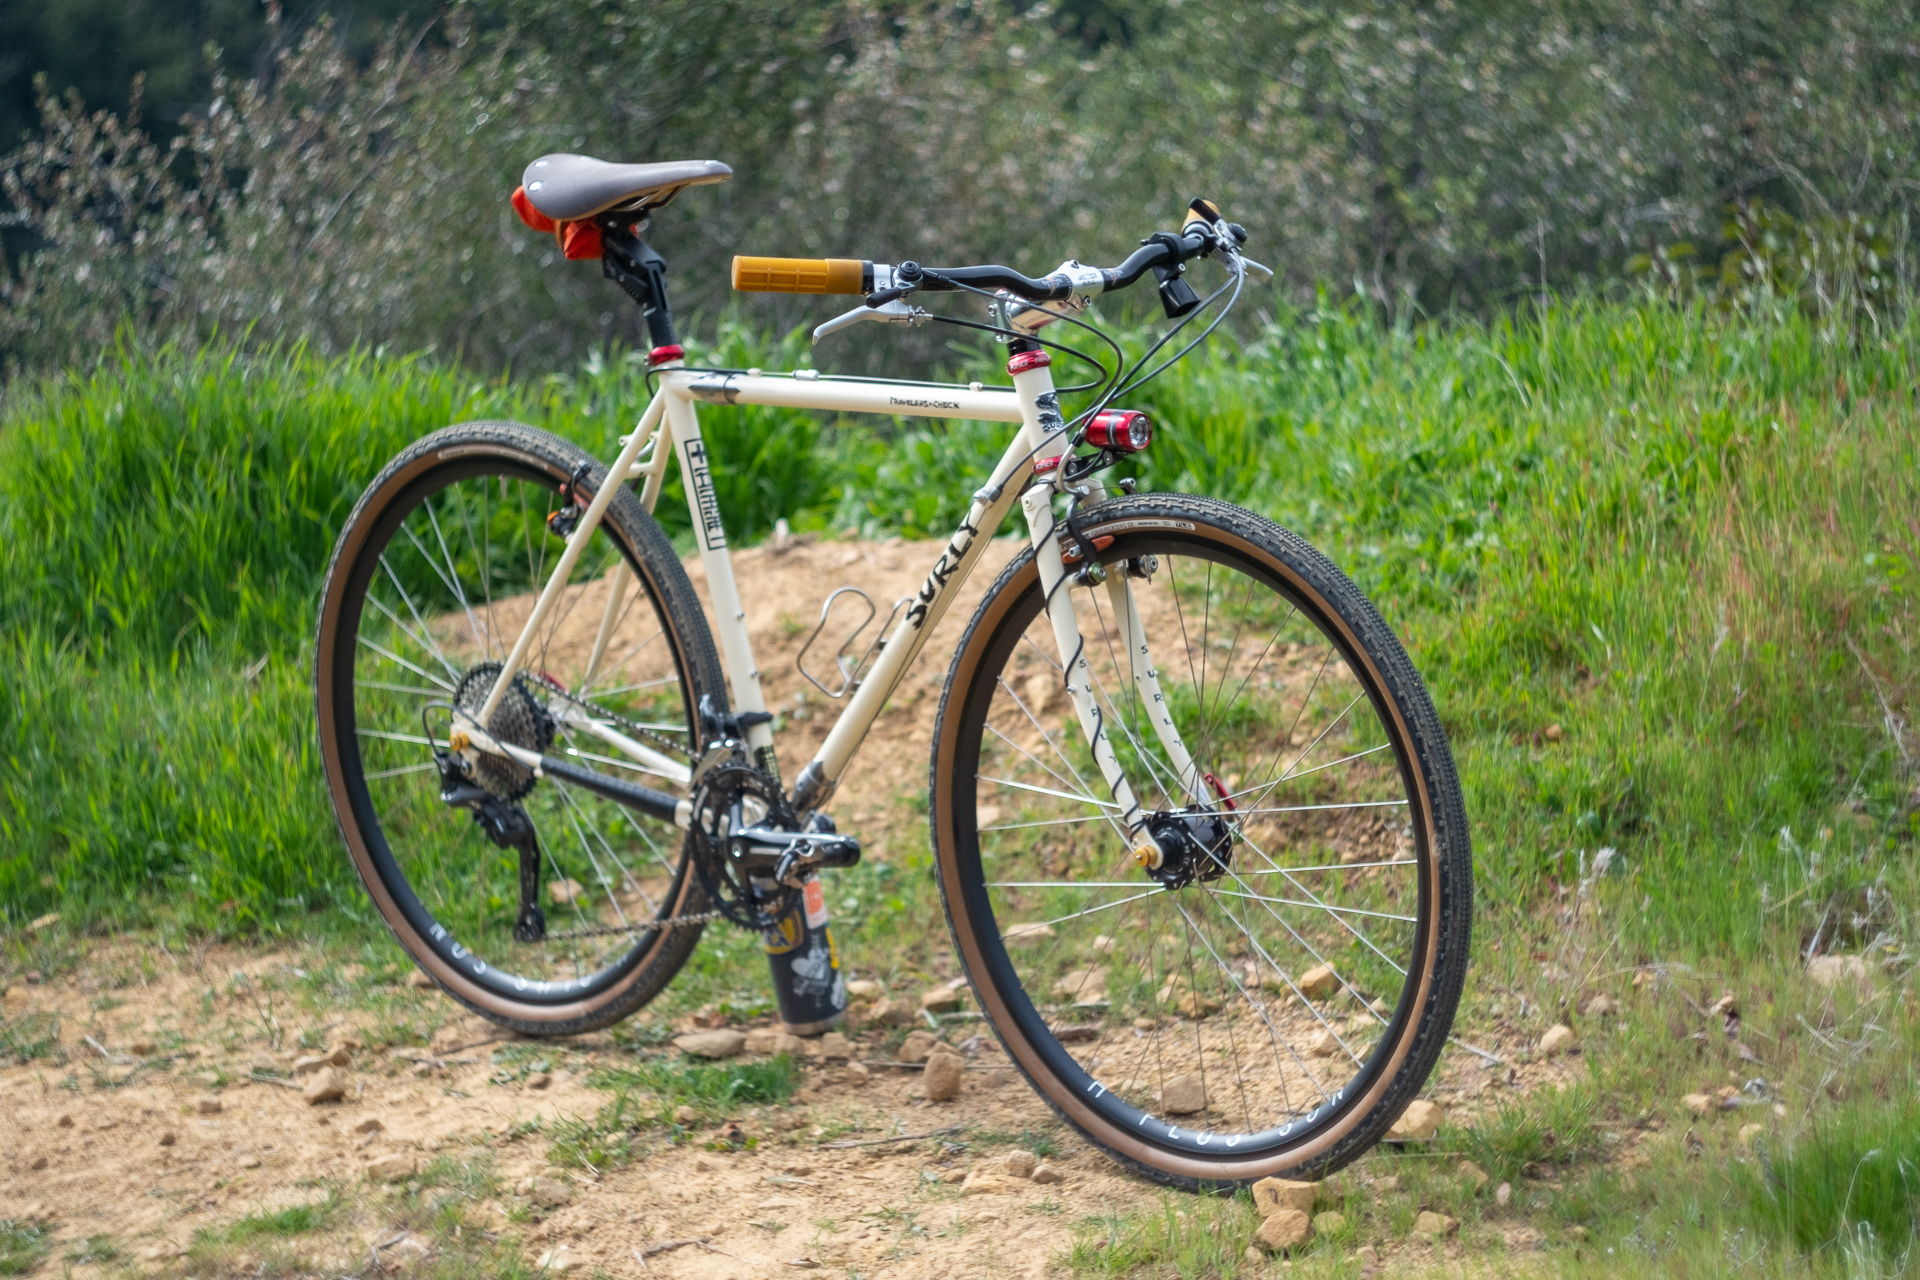 Surly Travelers Gravelers Check front view.